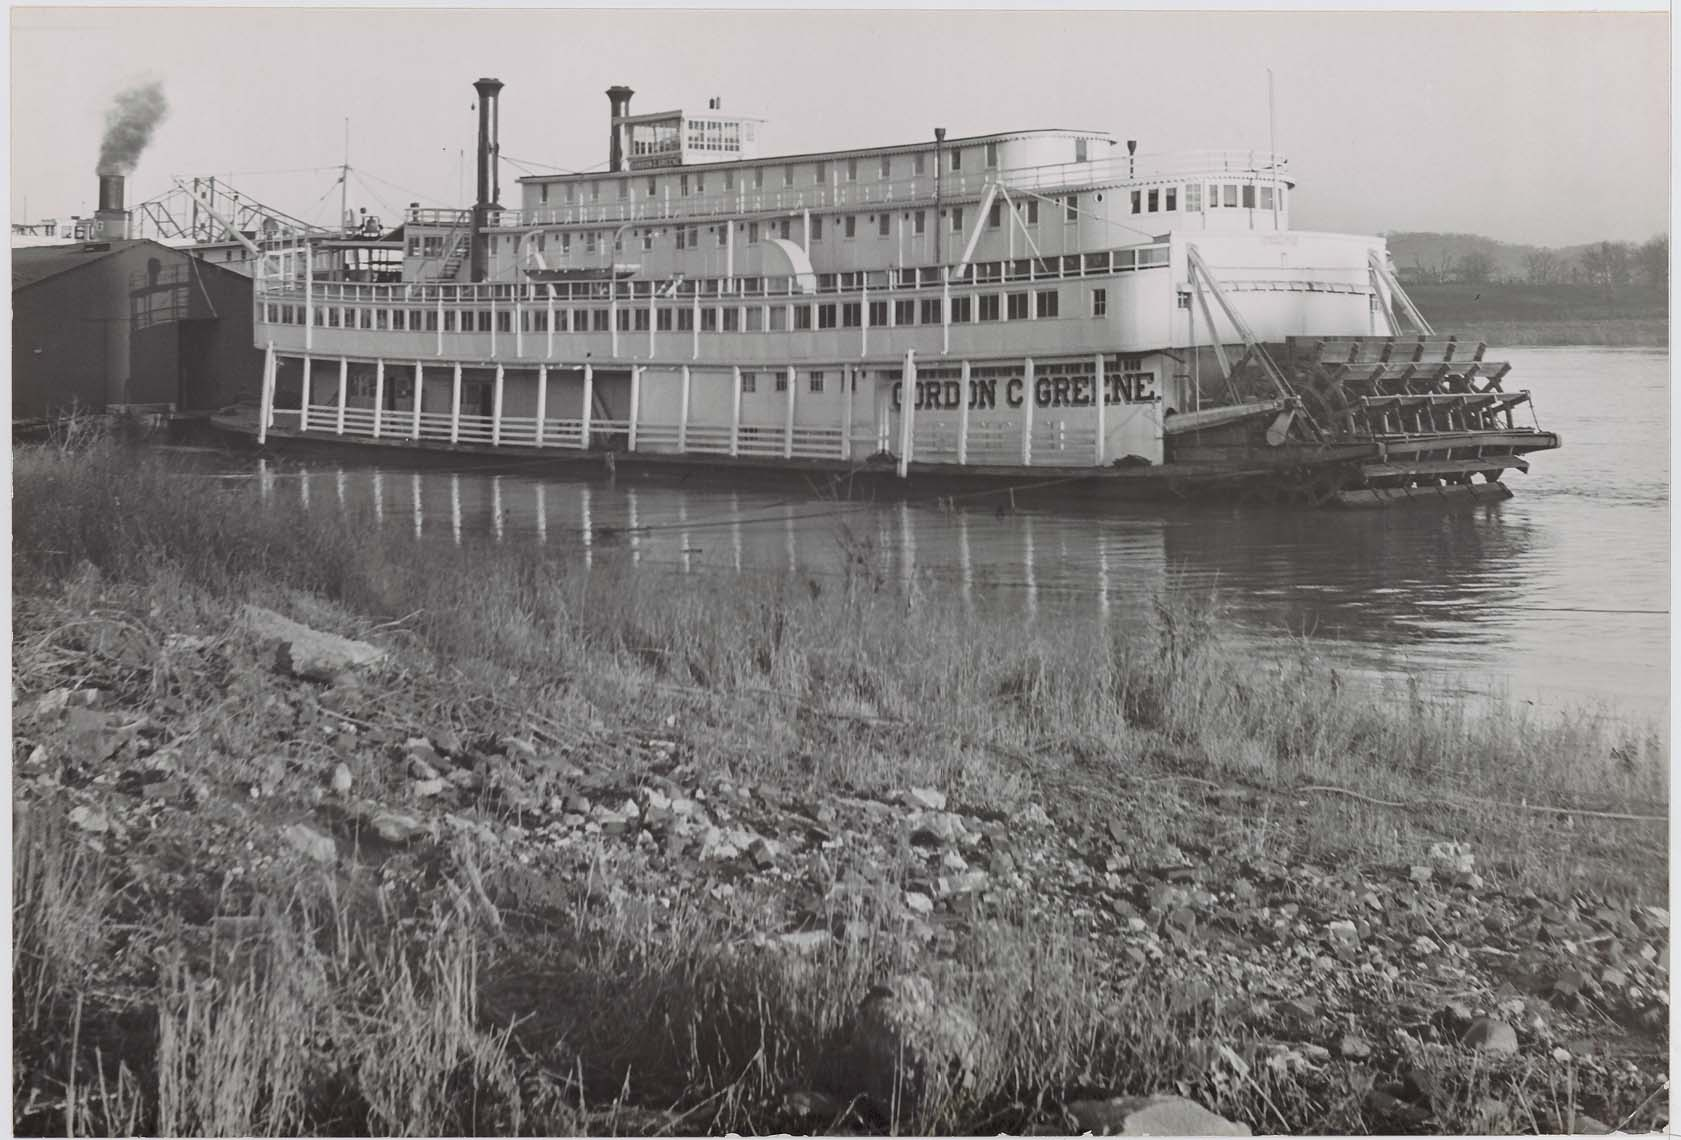 Sternwheeler Gordon C. Greene, February 1950